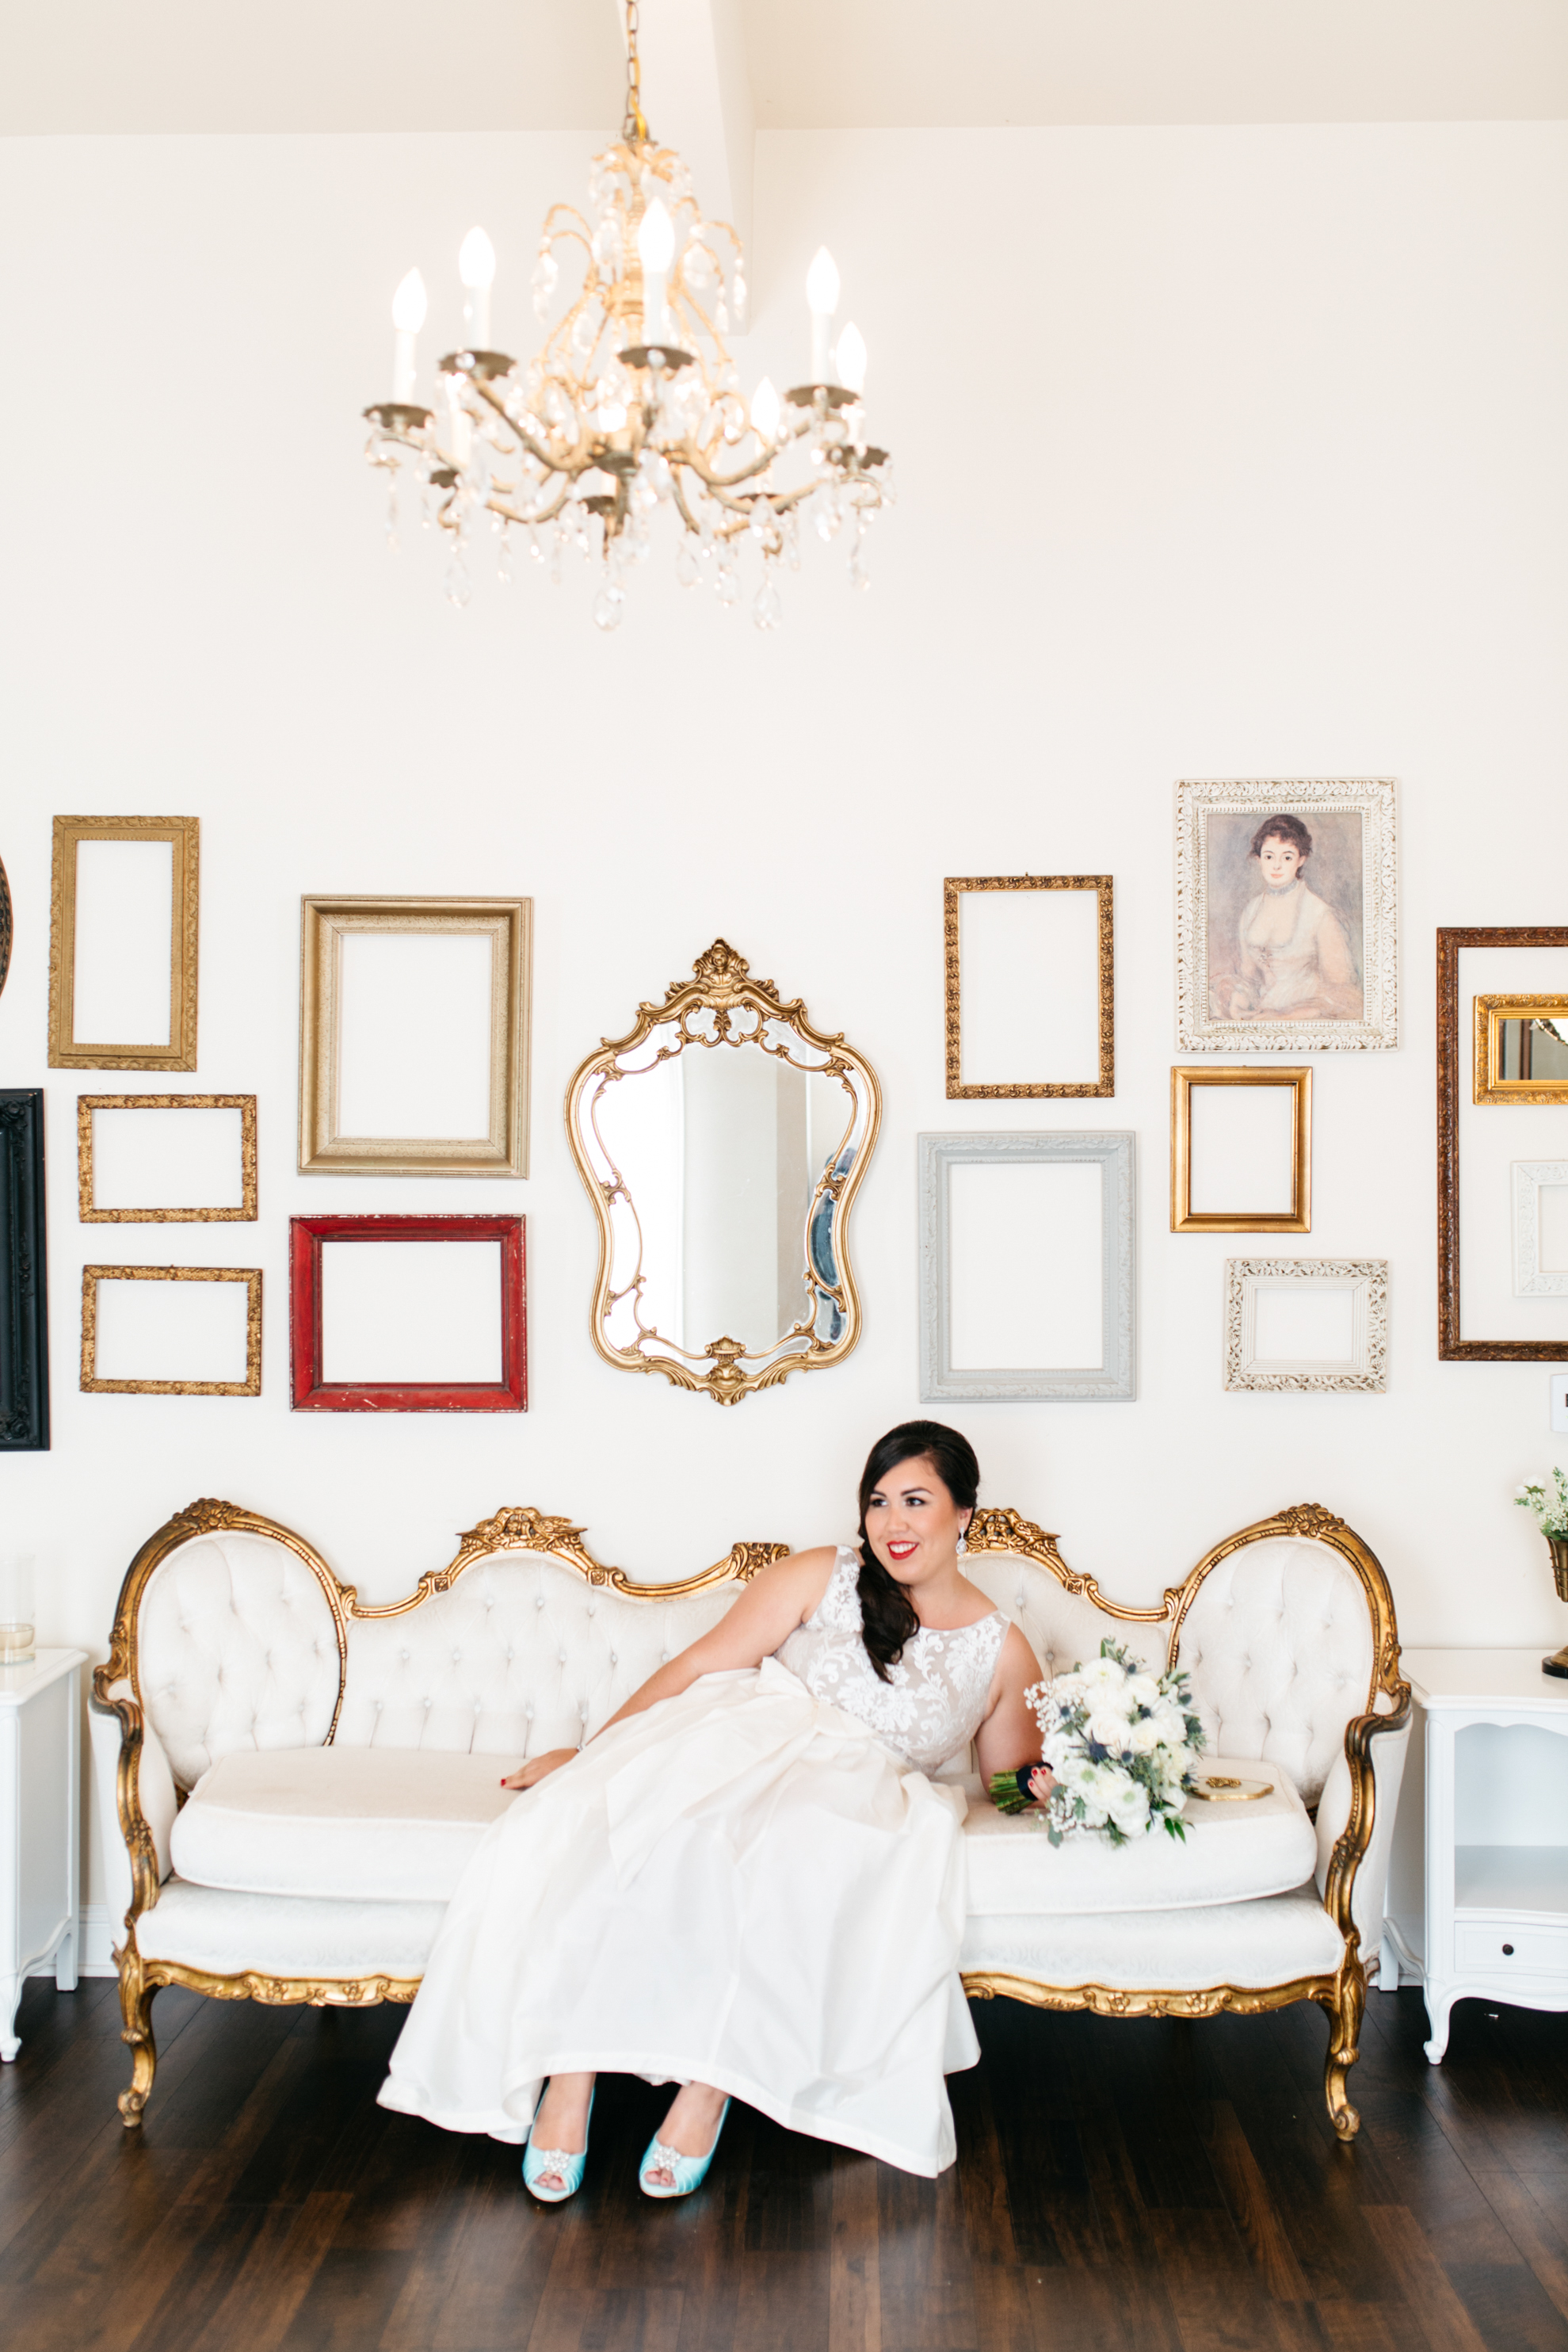 SamErica Studios - Los Angeles Wedding Photographer - The Loft on Pine-62.jpg